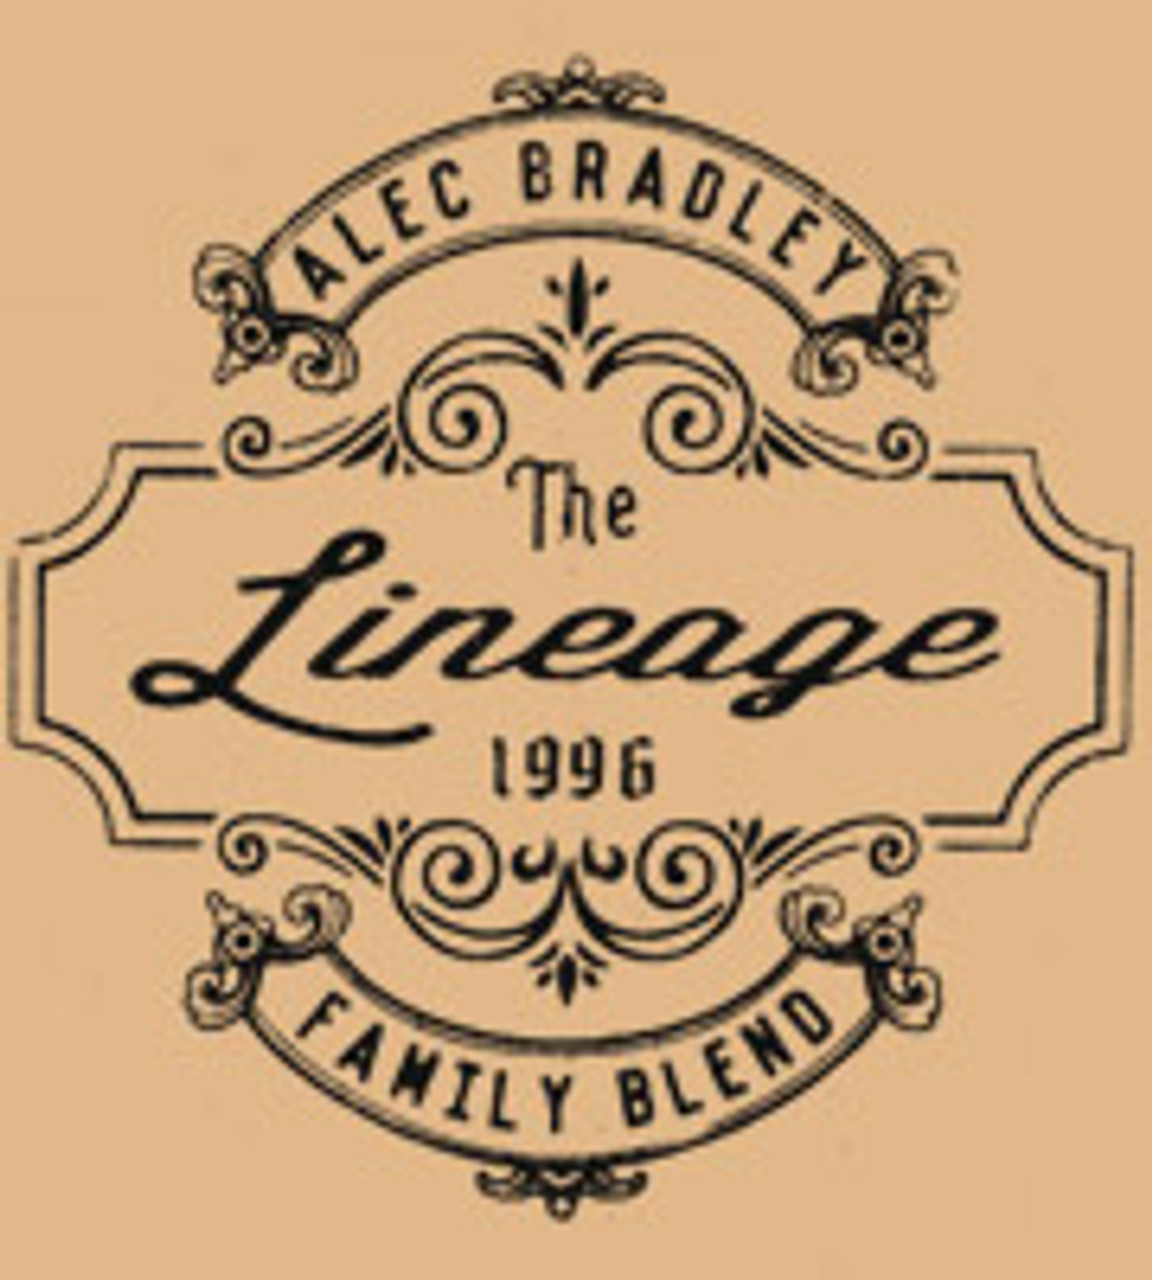 Alec Bradley Family Blend The Lineage 665 Cigars - 6 1/2 x 65 (Box of 20)